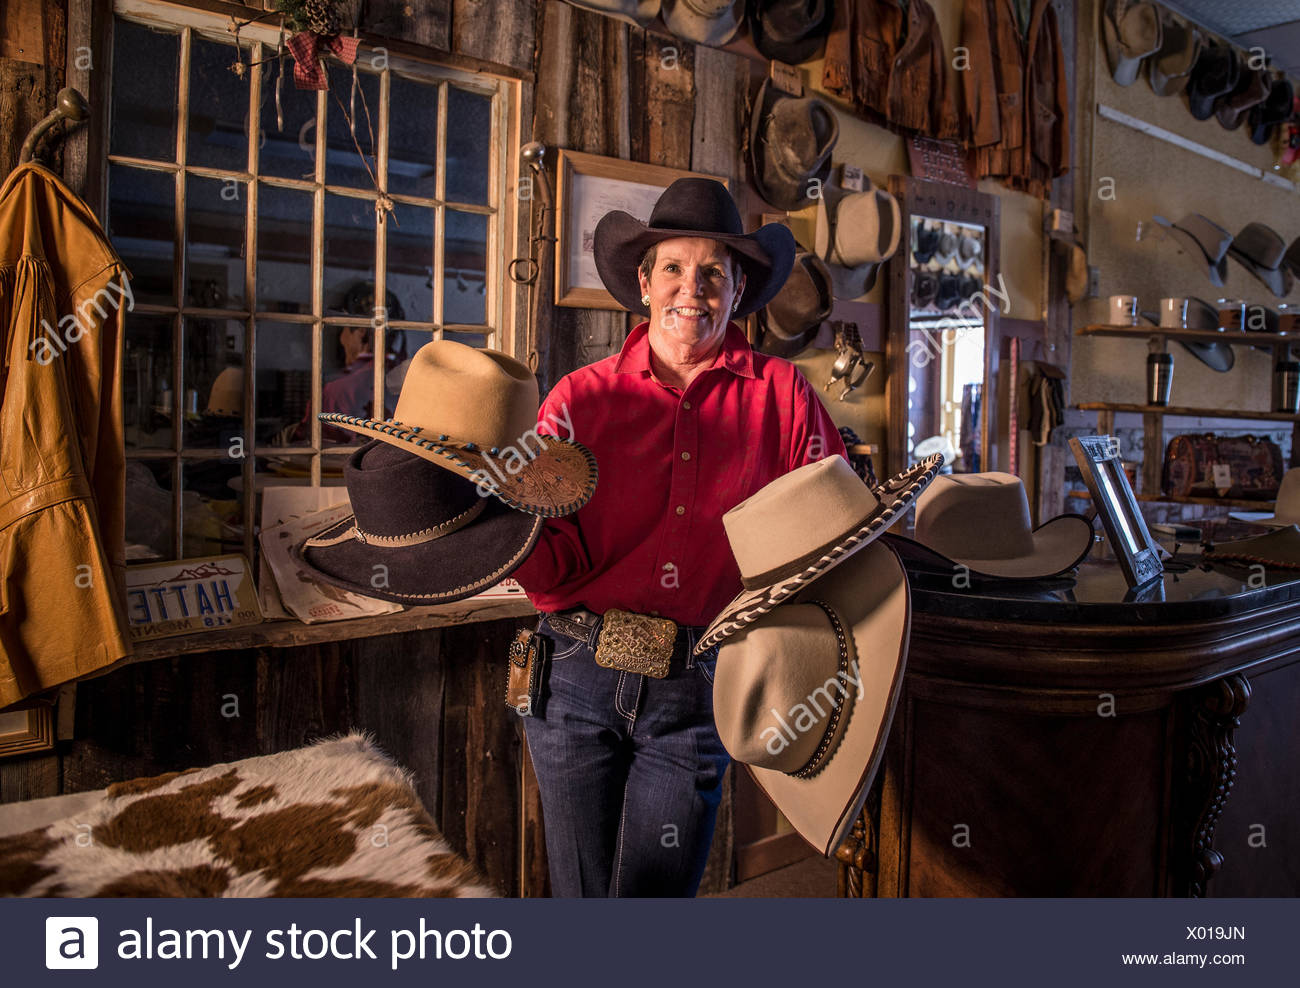 A hat maker shows off her famous creations. - Stock Image